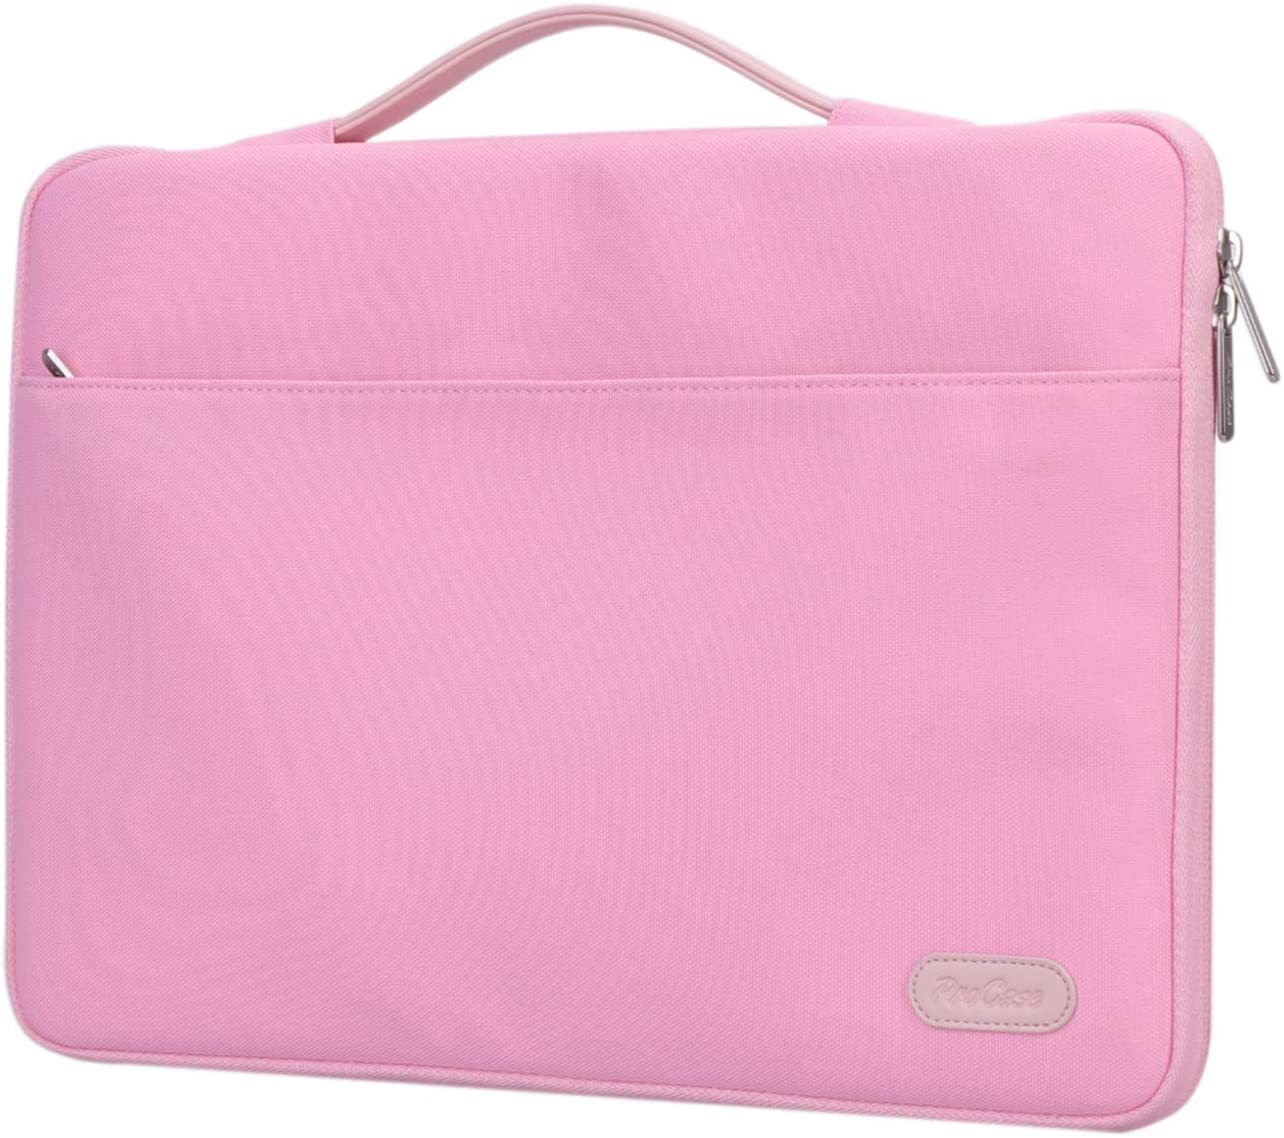 "ProCase 12-12.9 inch Sleeve Case Bag for Surface Pro X 2017/Pro 7 6 4 3, MacBook Pro 13, iPad Pro Protective Carrying Cover Handbag for 11"" 12"" Lenovo Dell Toshiba HP ASUS Acer Chromebook -Pink"